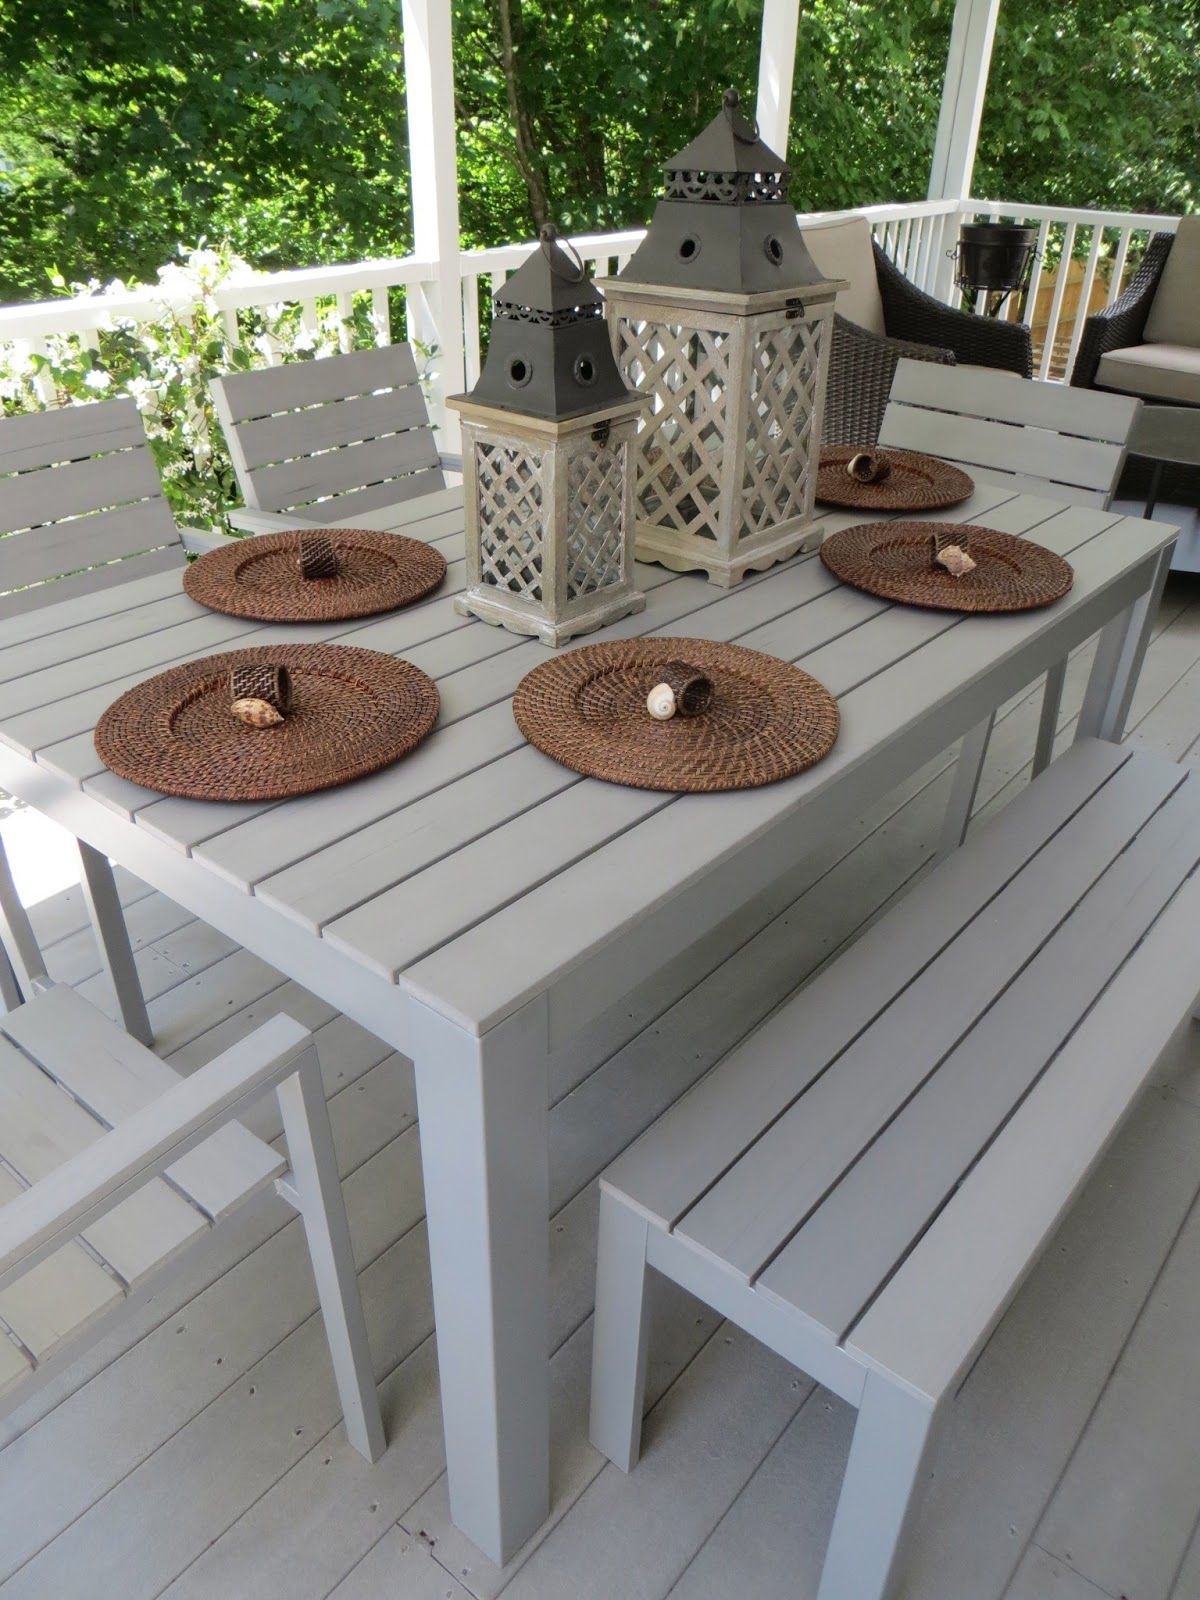 Falster Ikea - I Love The Looks Of This Outdoor Dining Set ... intérieur Meubles Jardin Ikea